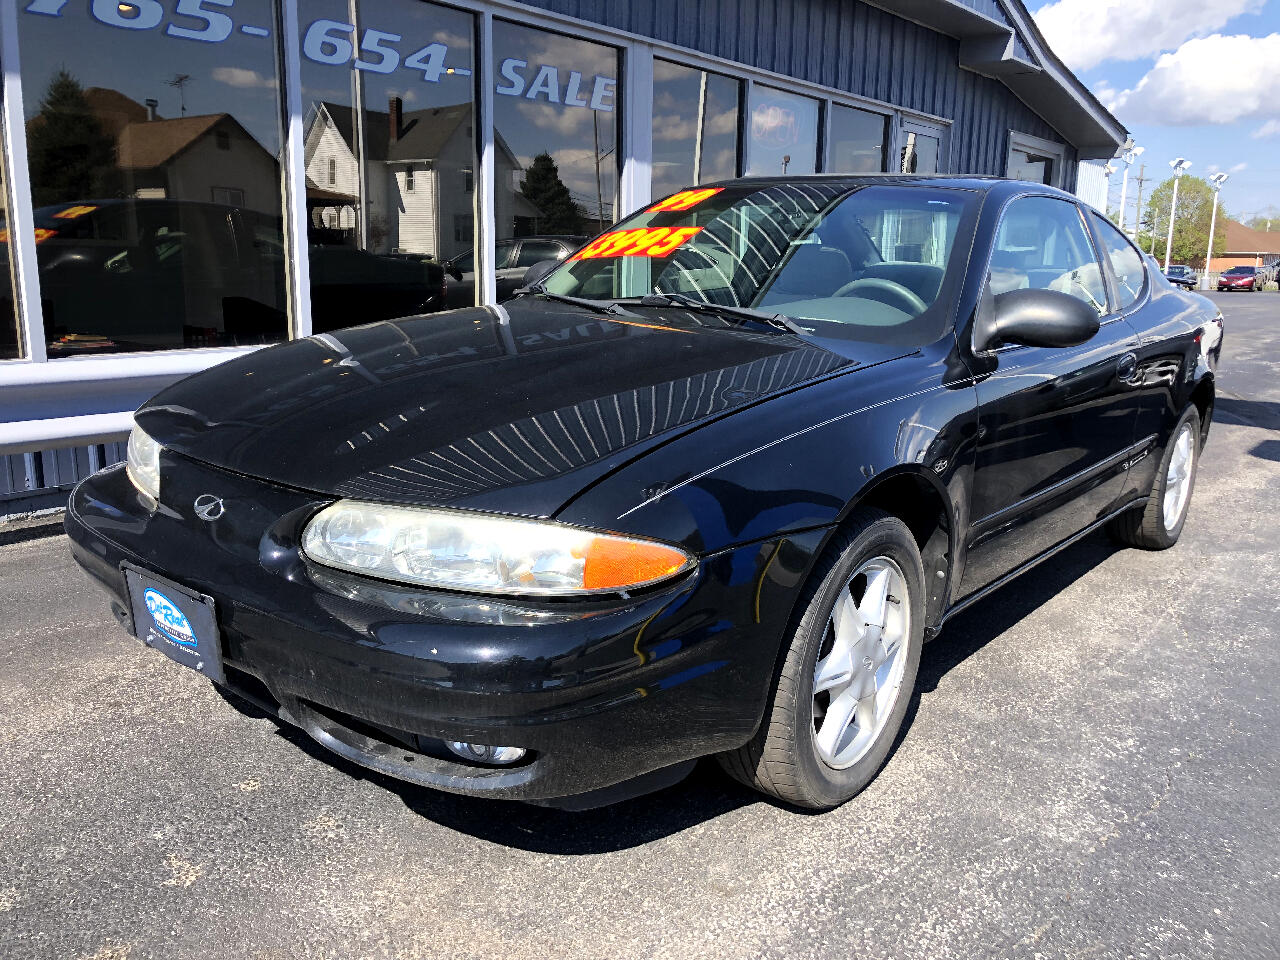 1999 Oldsmobile Alero GL coupe